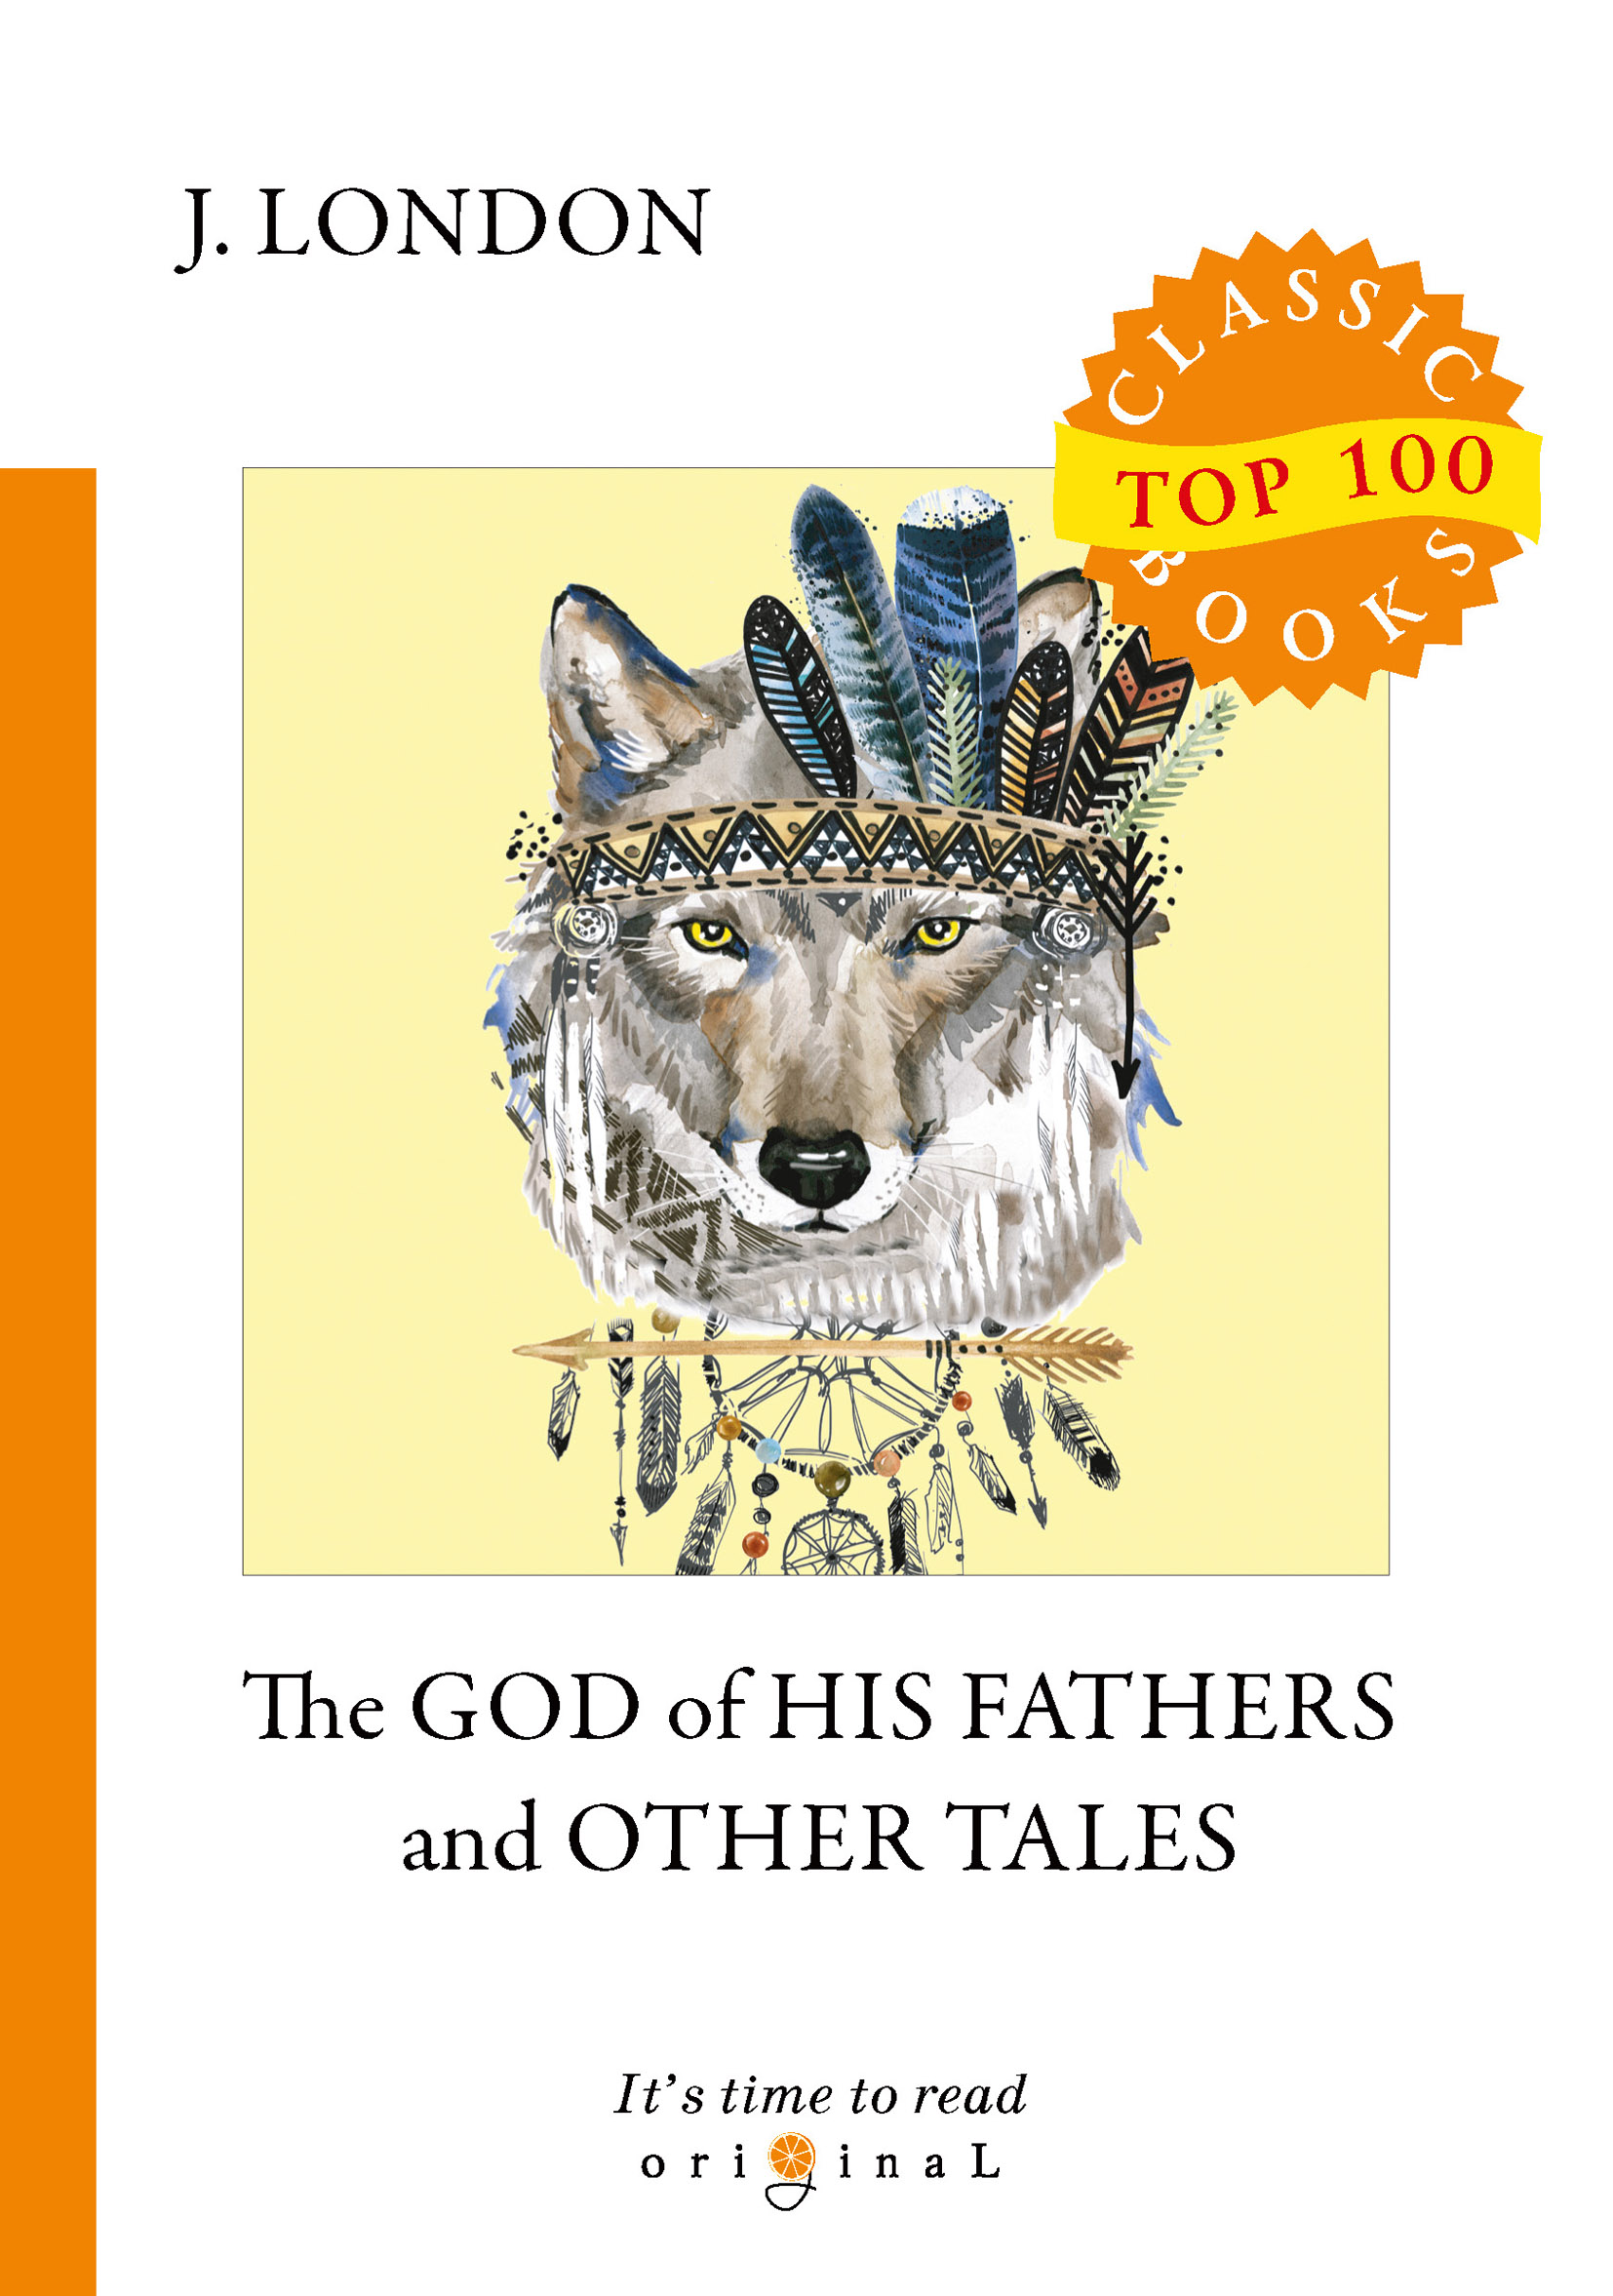 London J. The God of His Fathers and Other Tales набор масок для волос dnc dnc dn001lwtax71